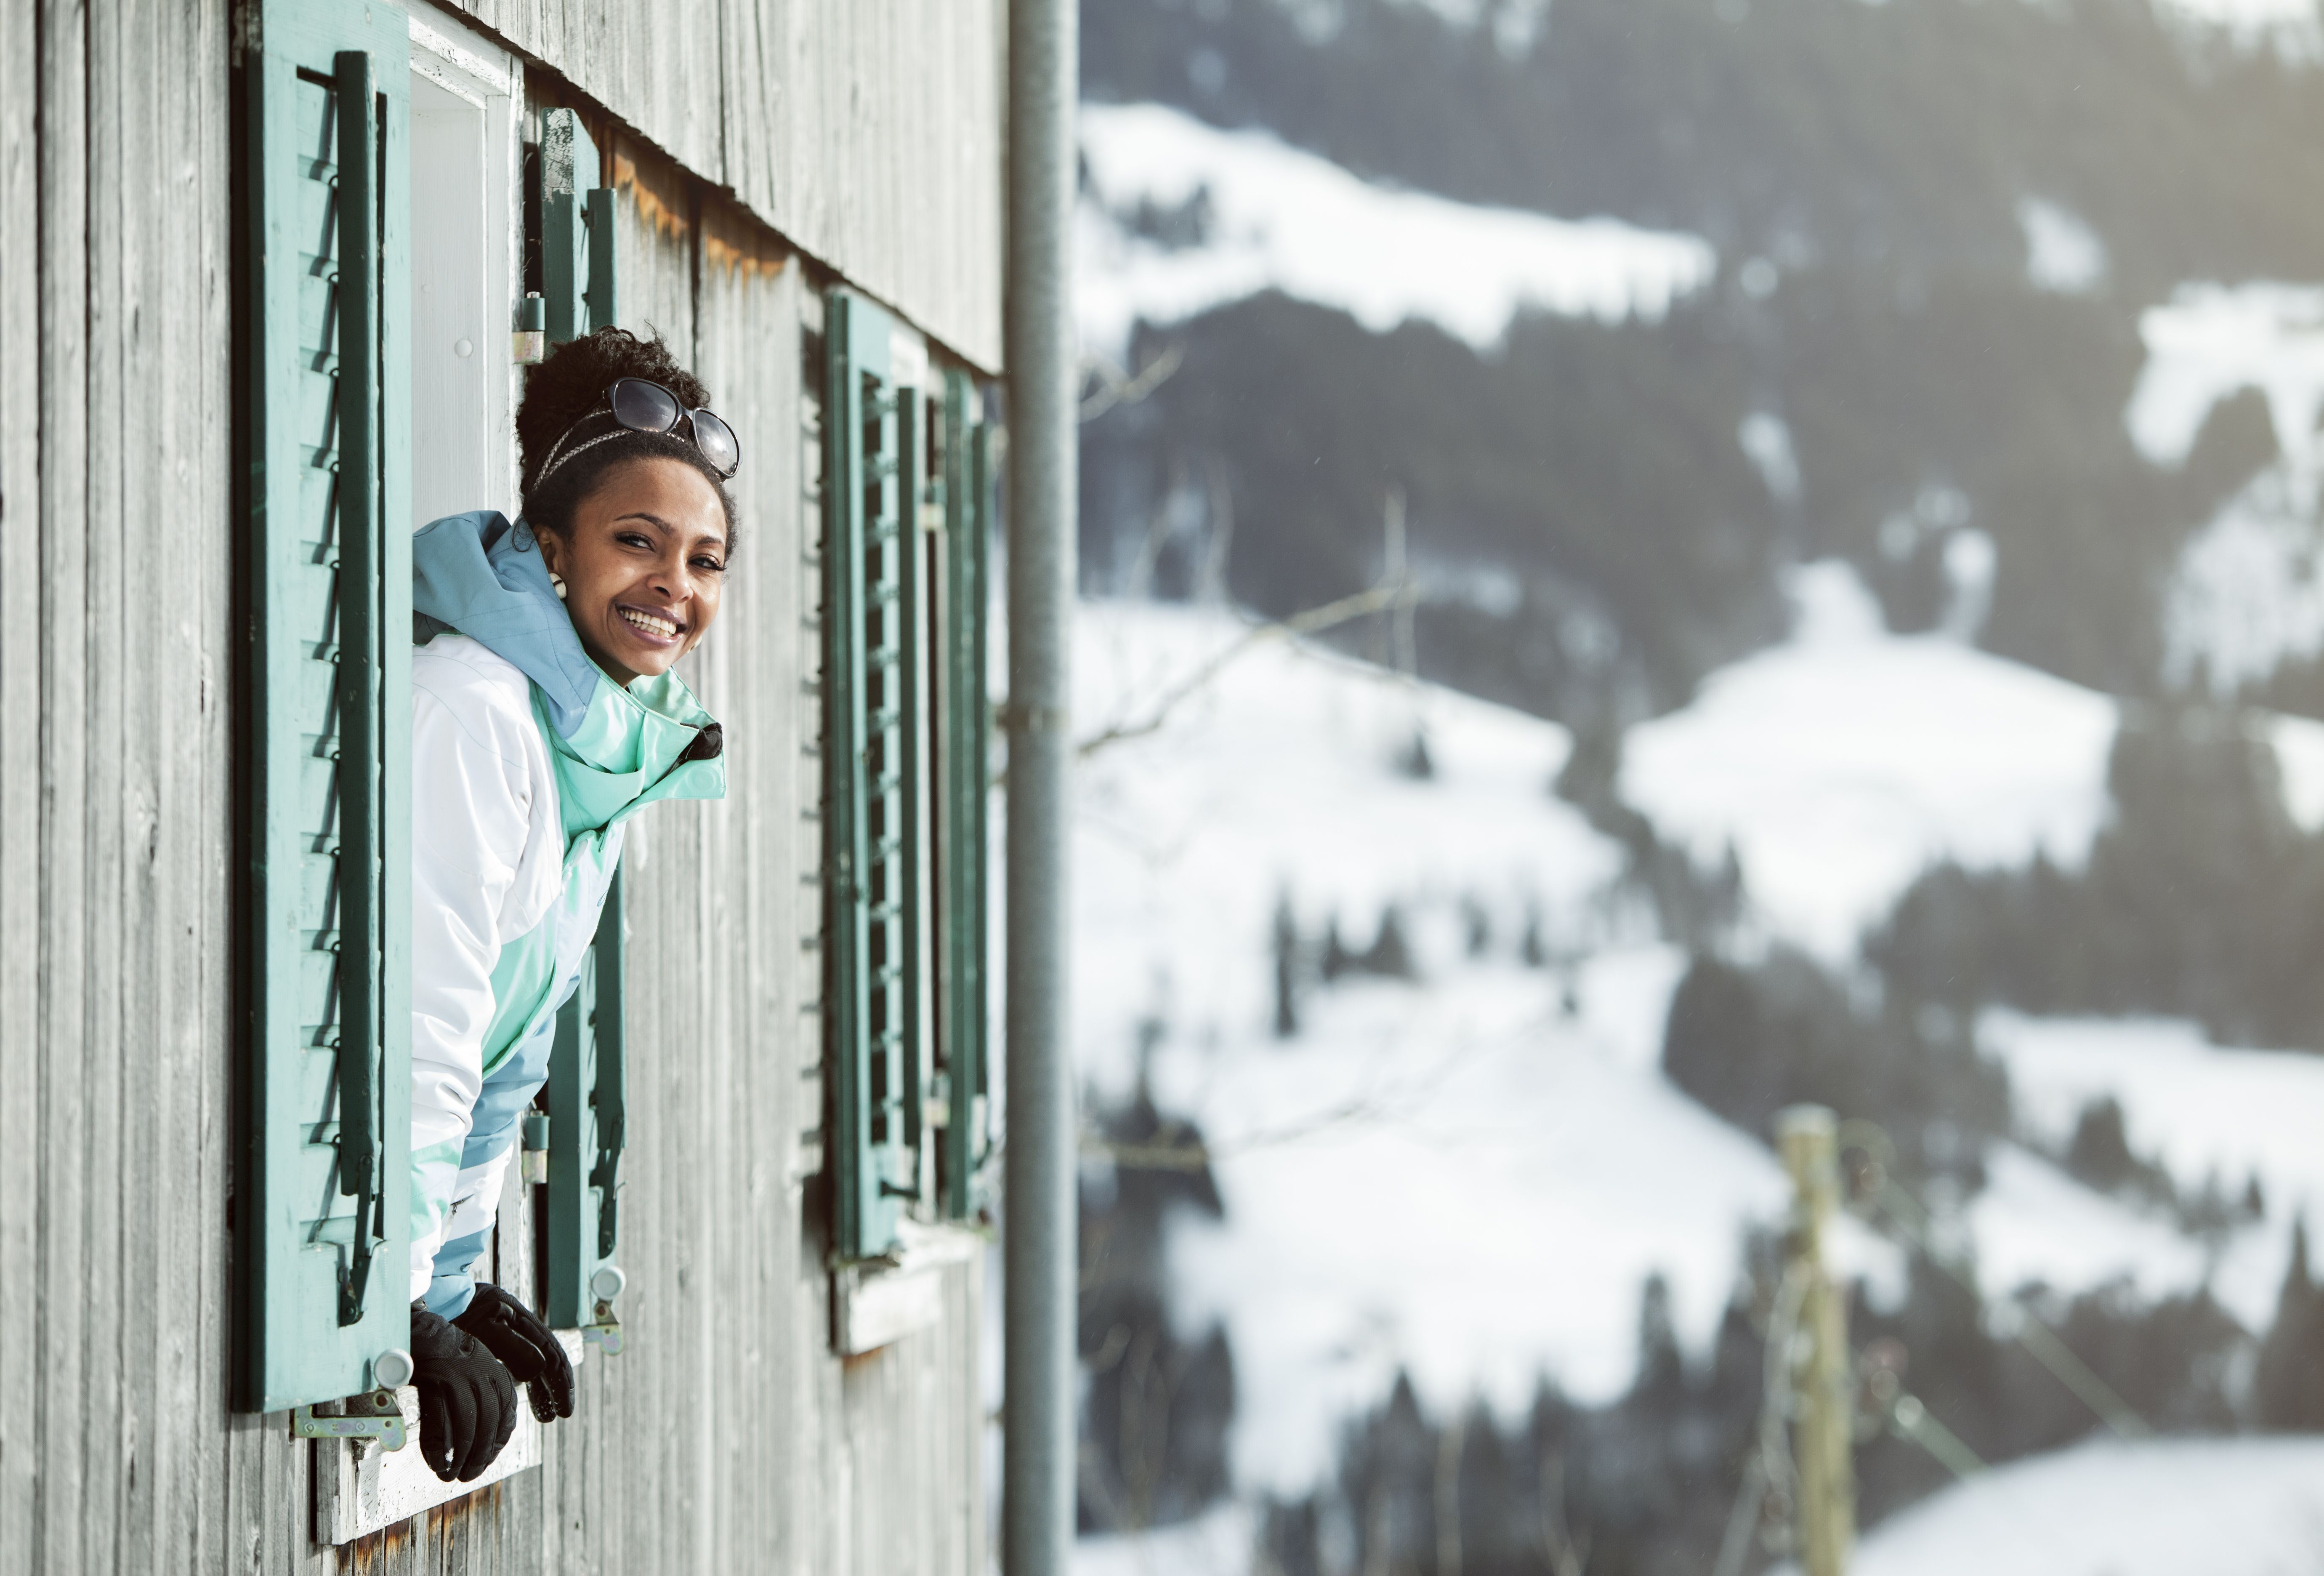 The 6 Best Luxury Ski Wear Companies